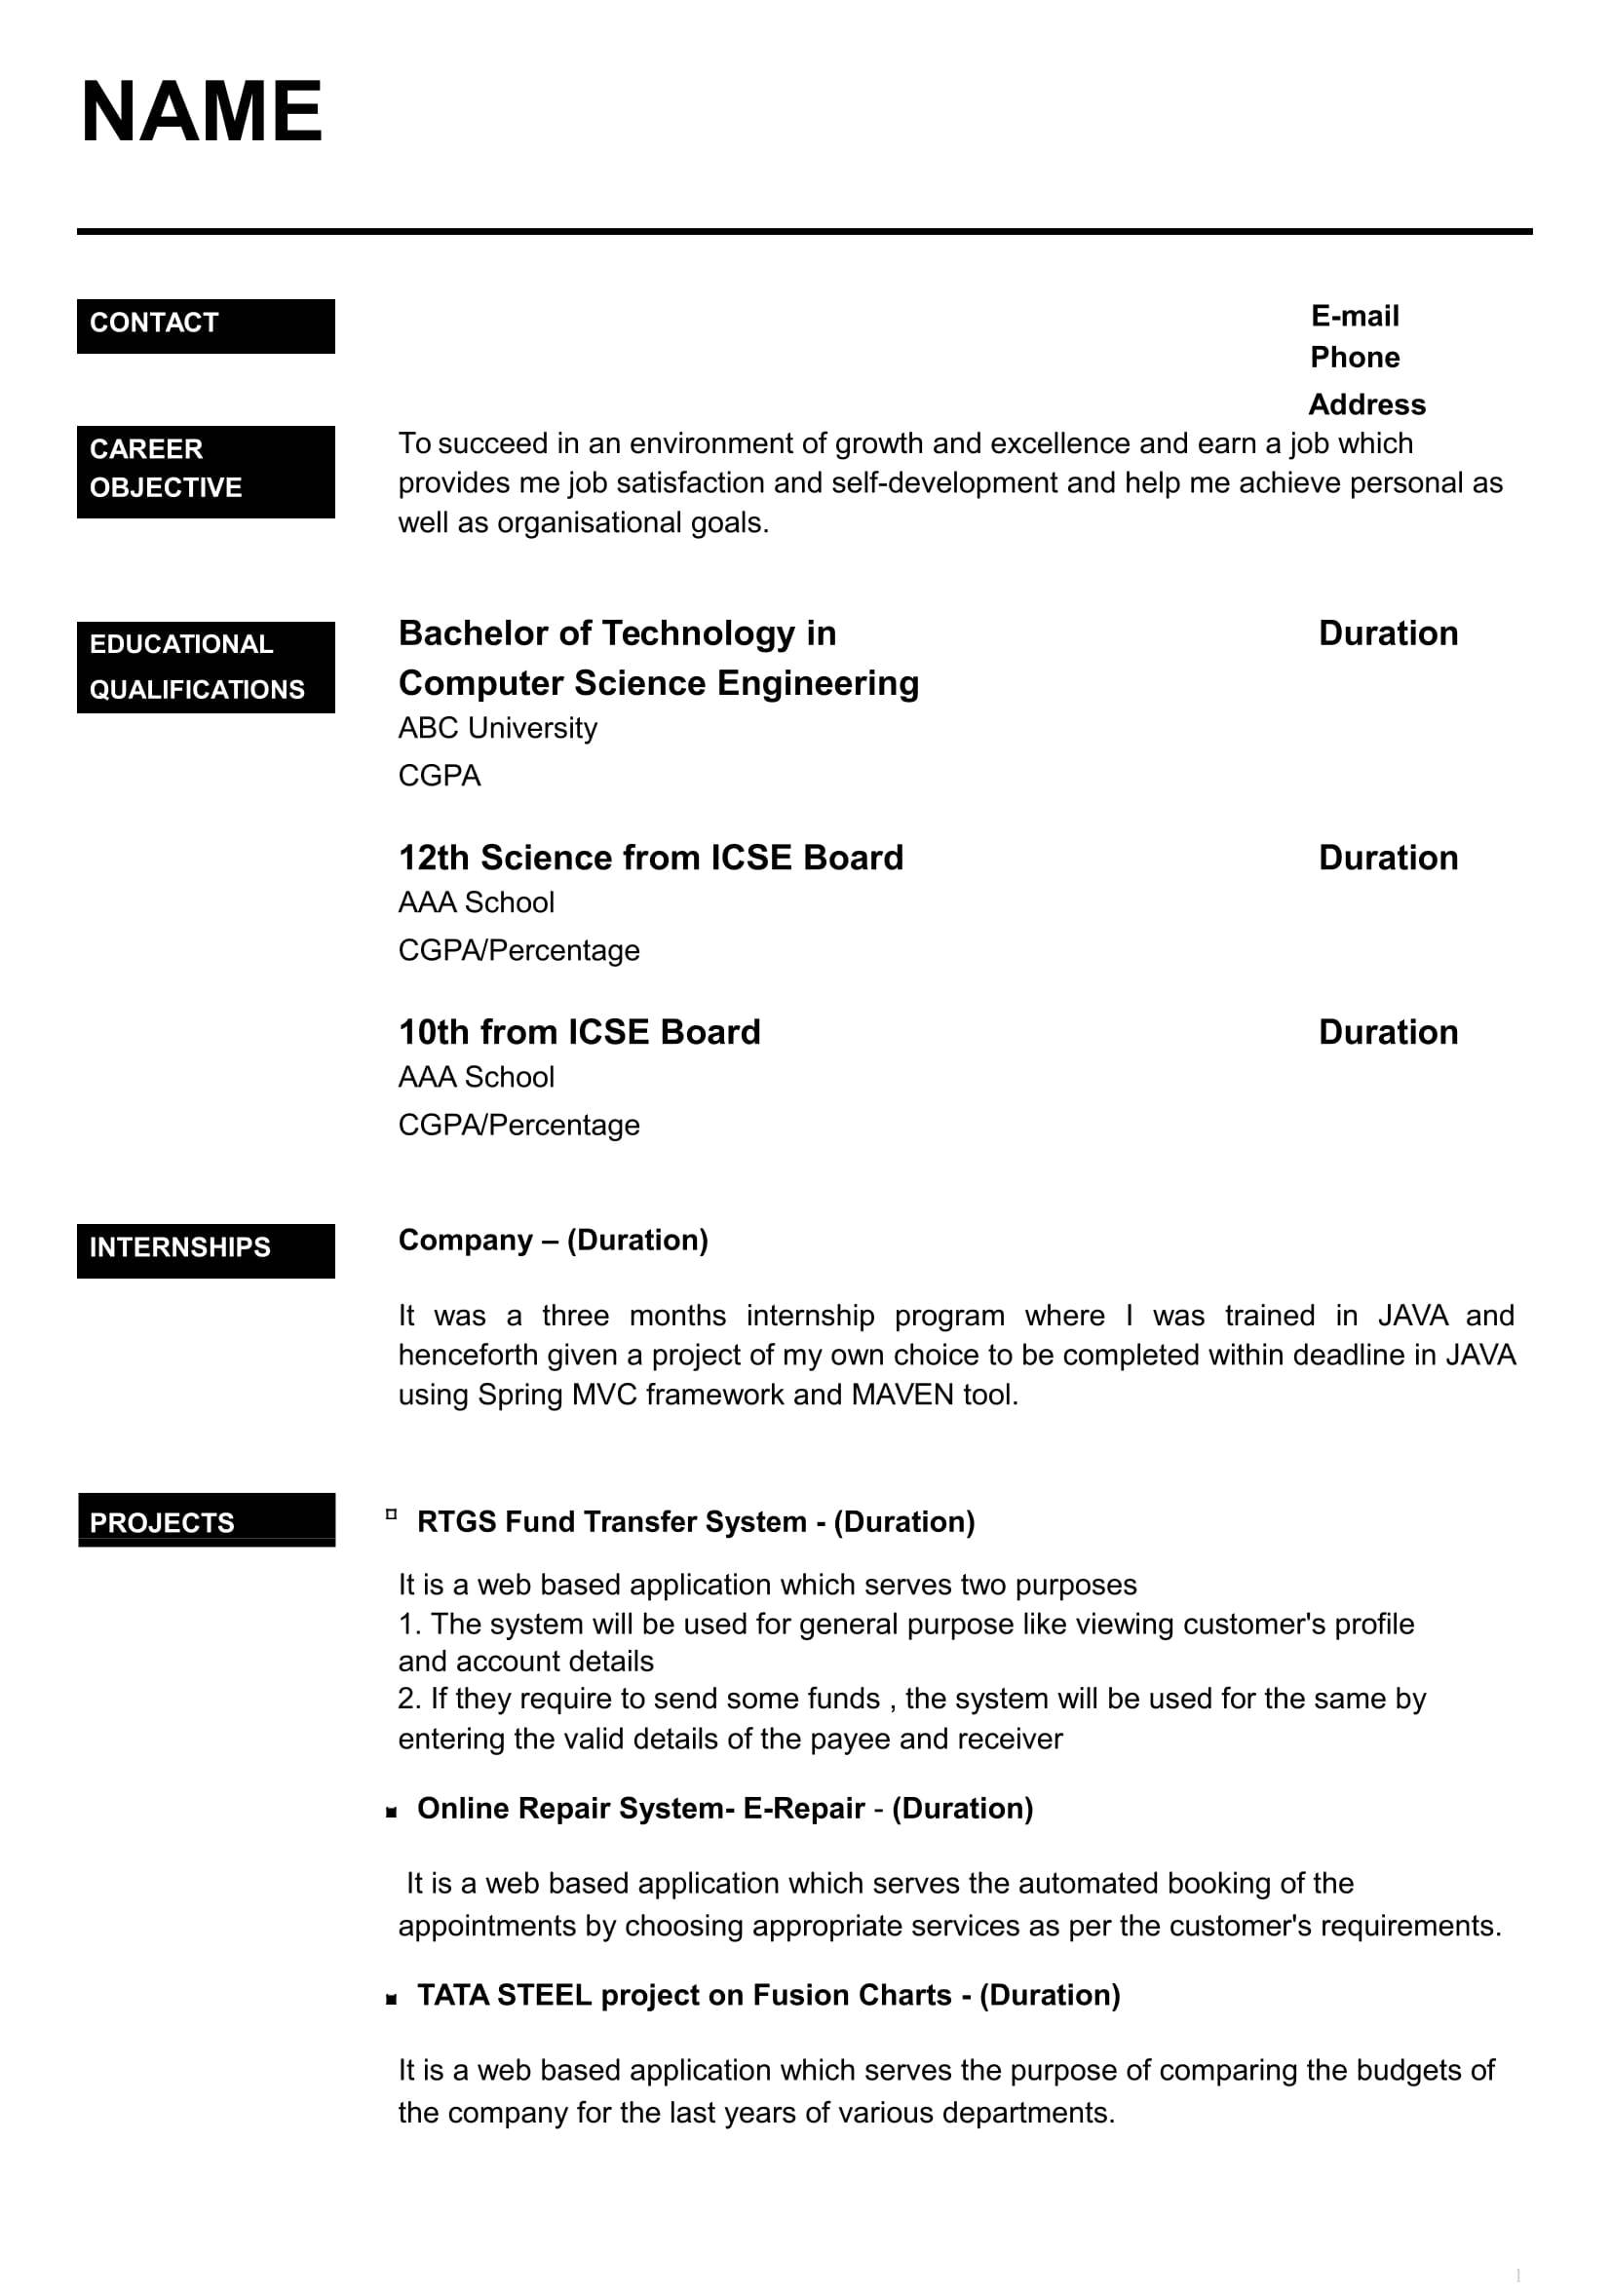 Resume Templates For Freshers Free